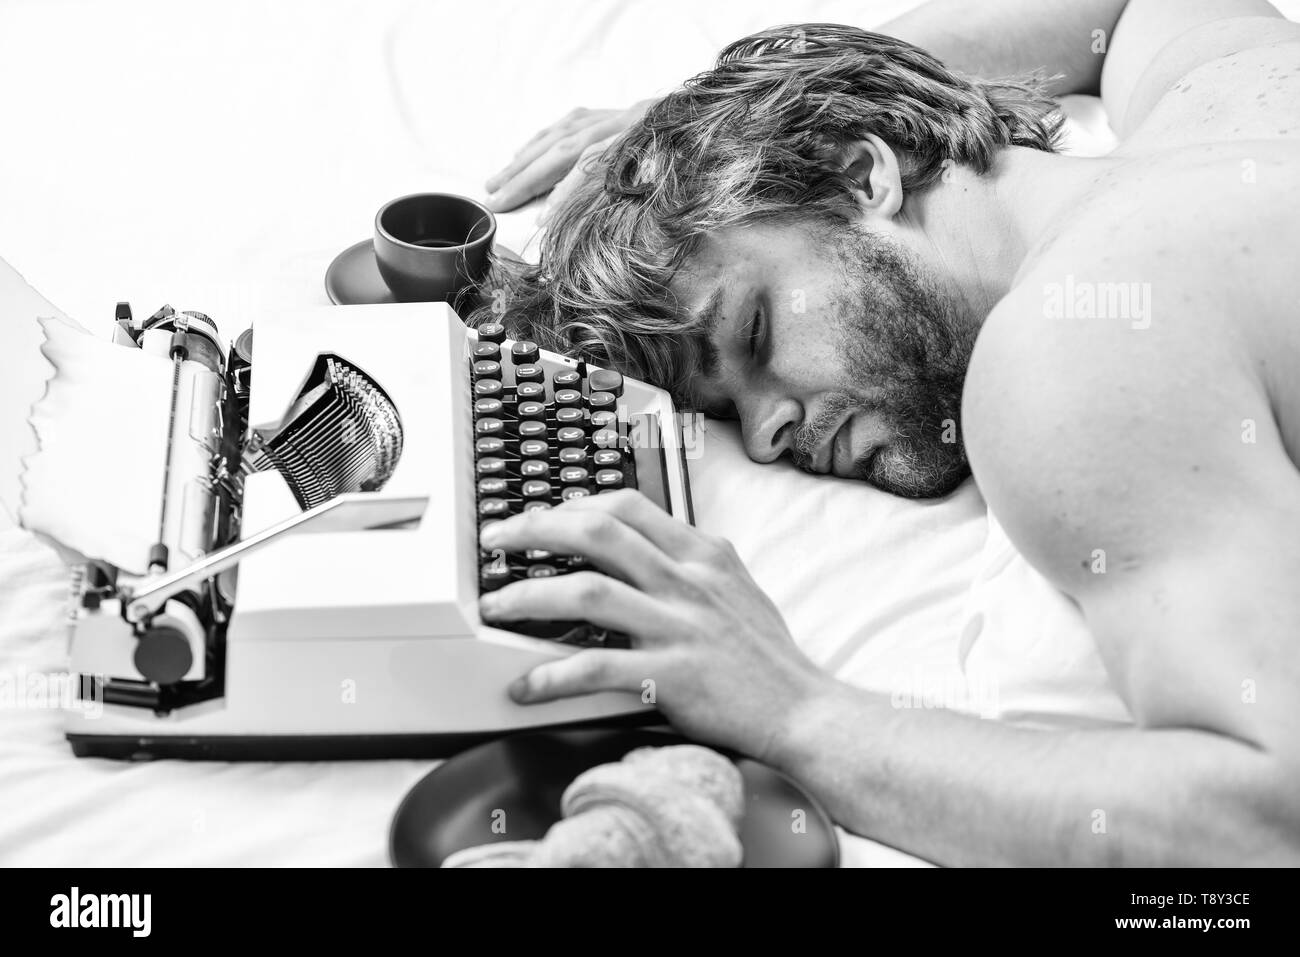 Worked all night. Man fall asleep. Writer used old fashioned typewriter. Author tousled hair fall asleep while write book. Workaholic fall asleep. Man with typewriter sleep. Deadline concept. - Stock Image